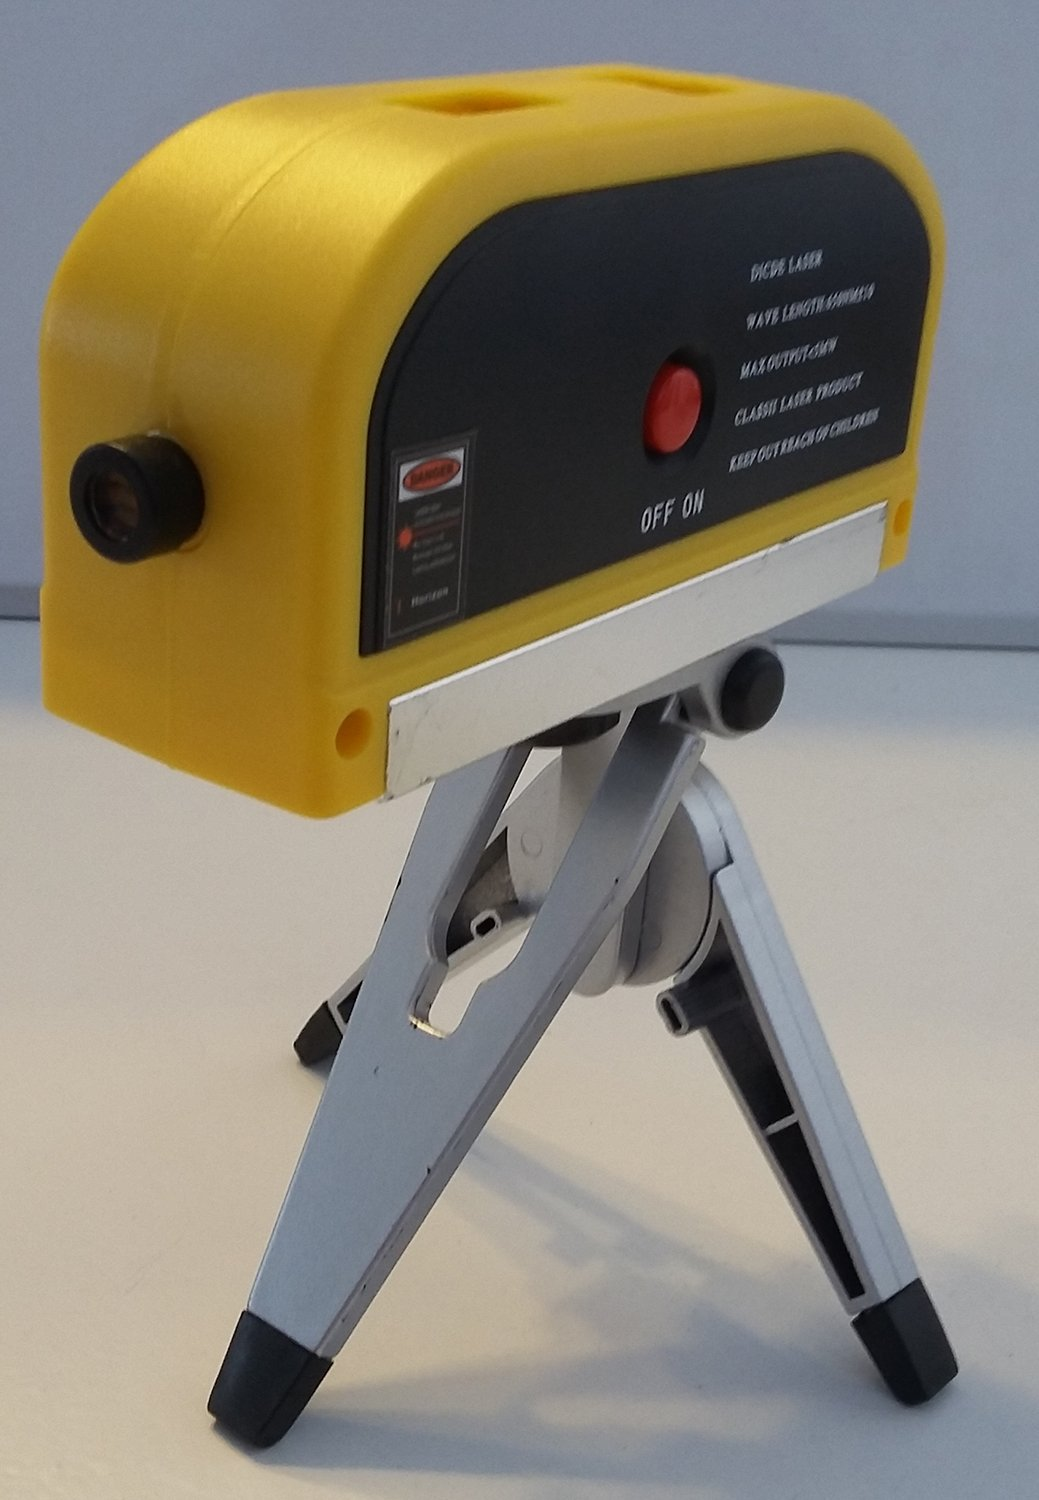 Red Laser Level Tool with Built-in Tripod for Picture Hanging, Tile Work, Shelf Hanging, and Home Projects